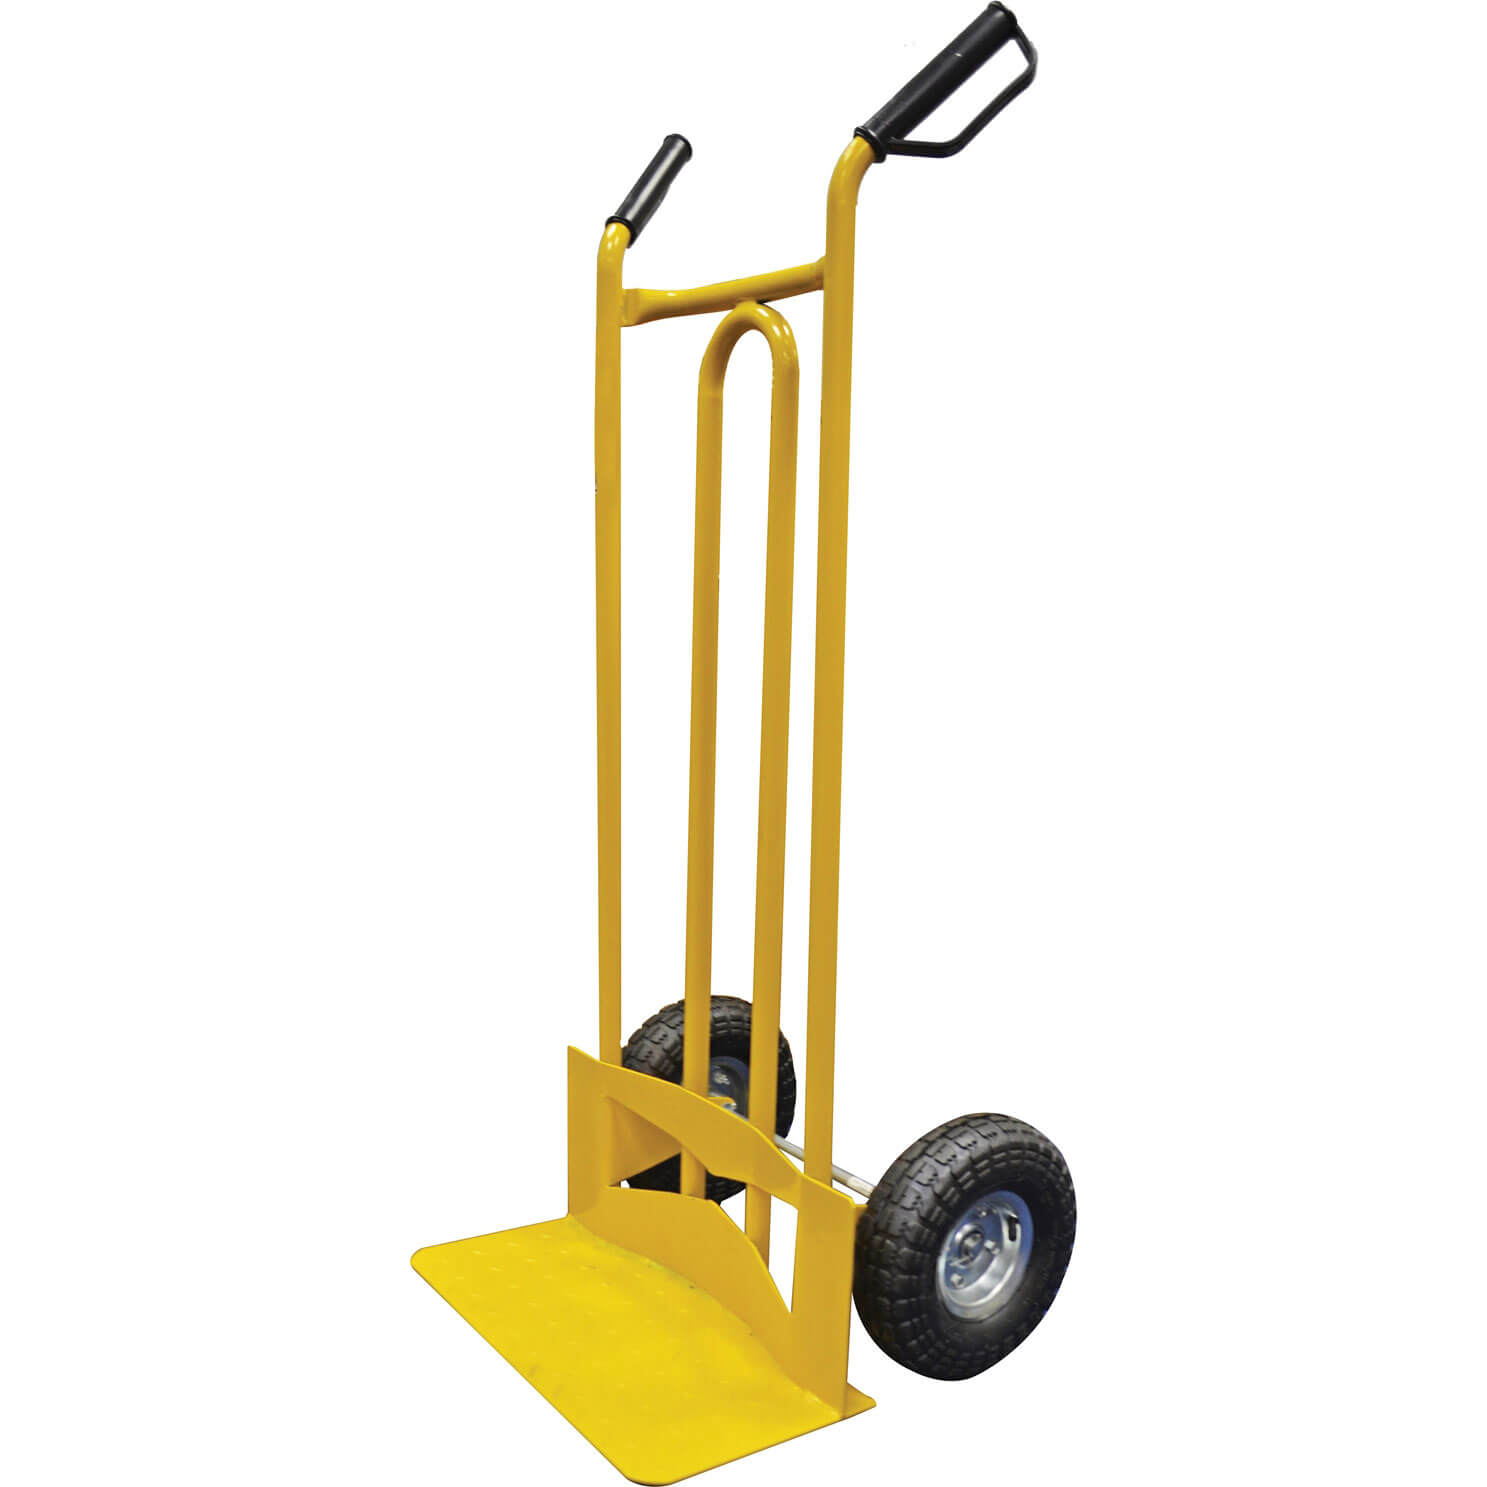 Faithfull Heavy Duty Lift Truck Trolley